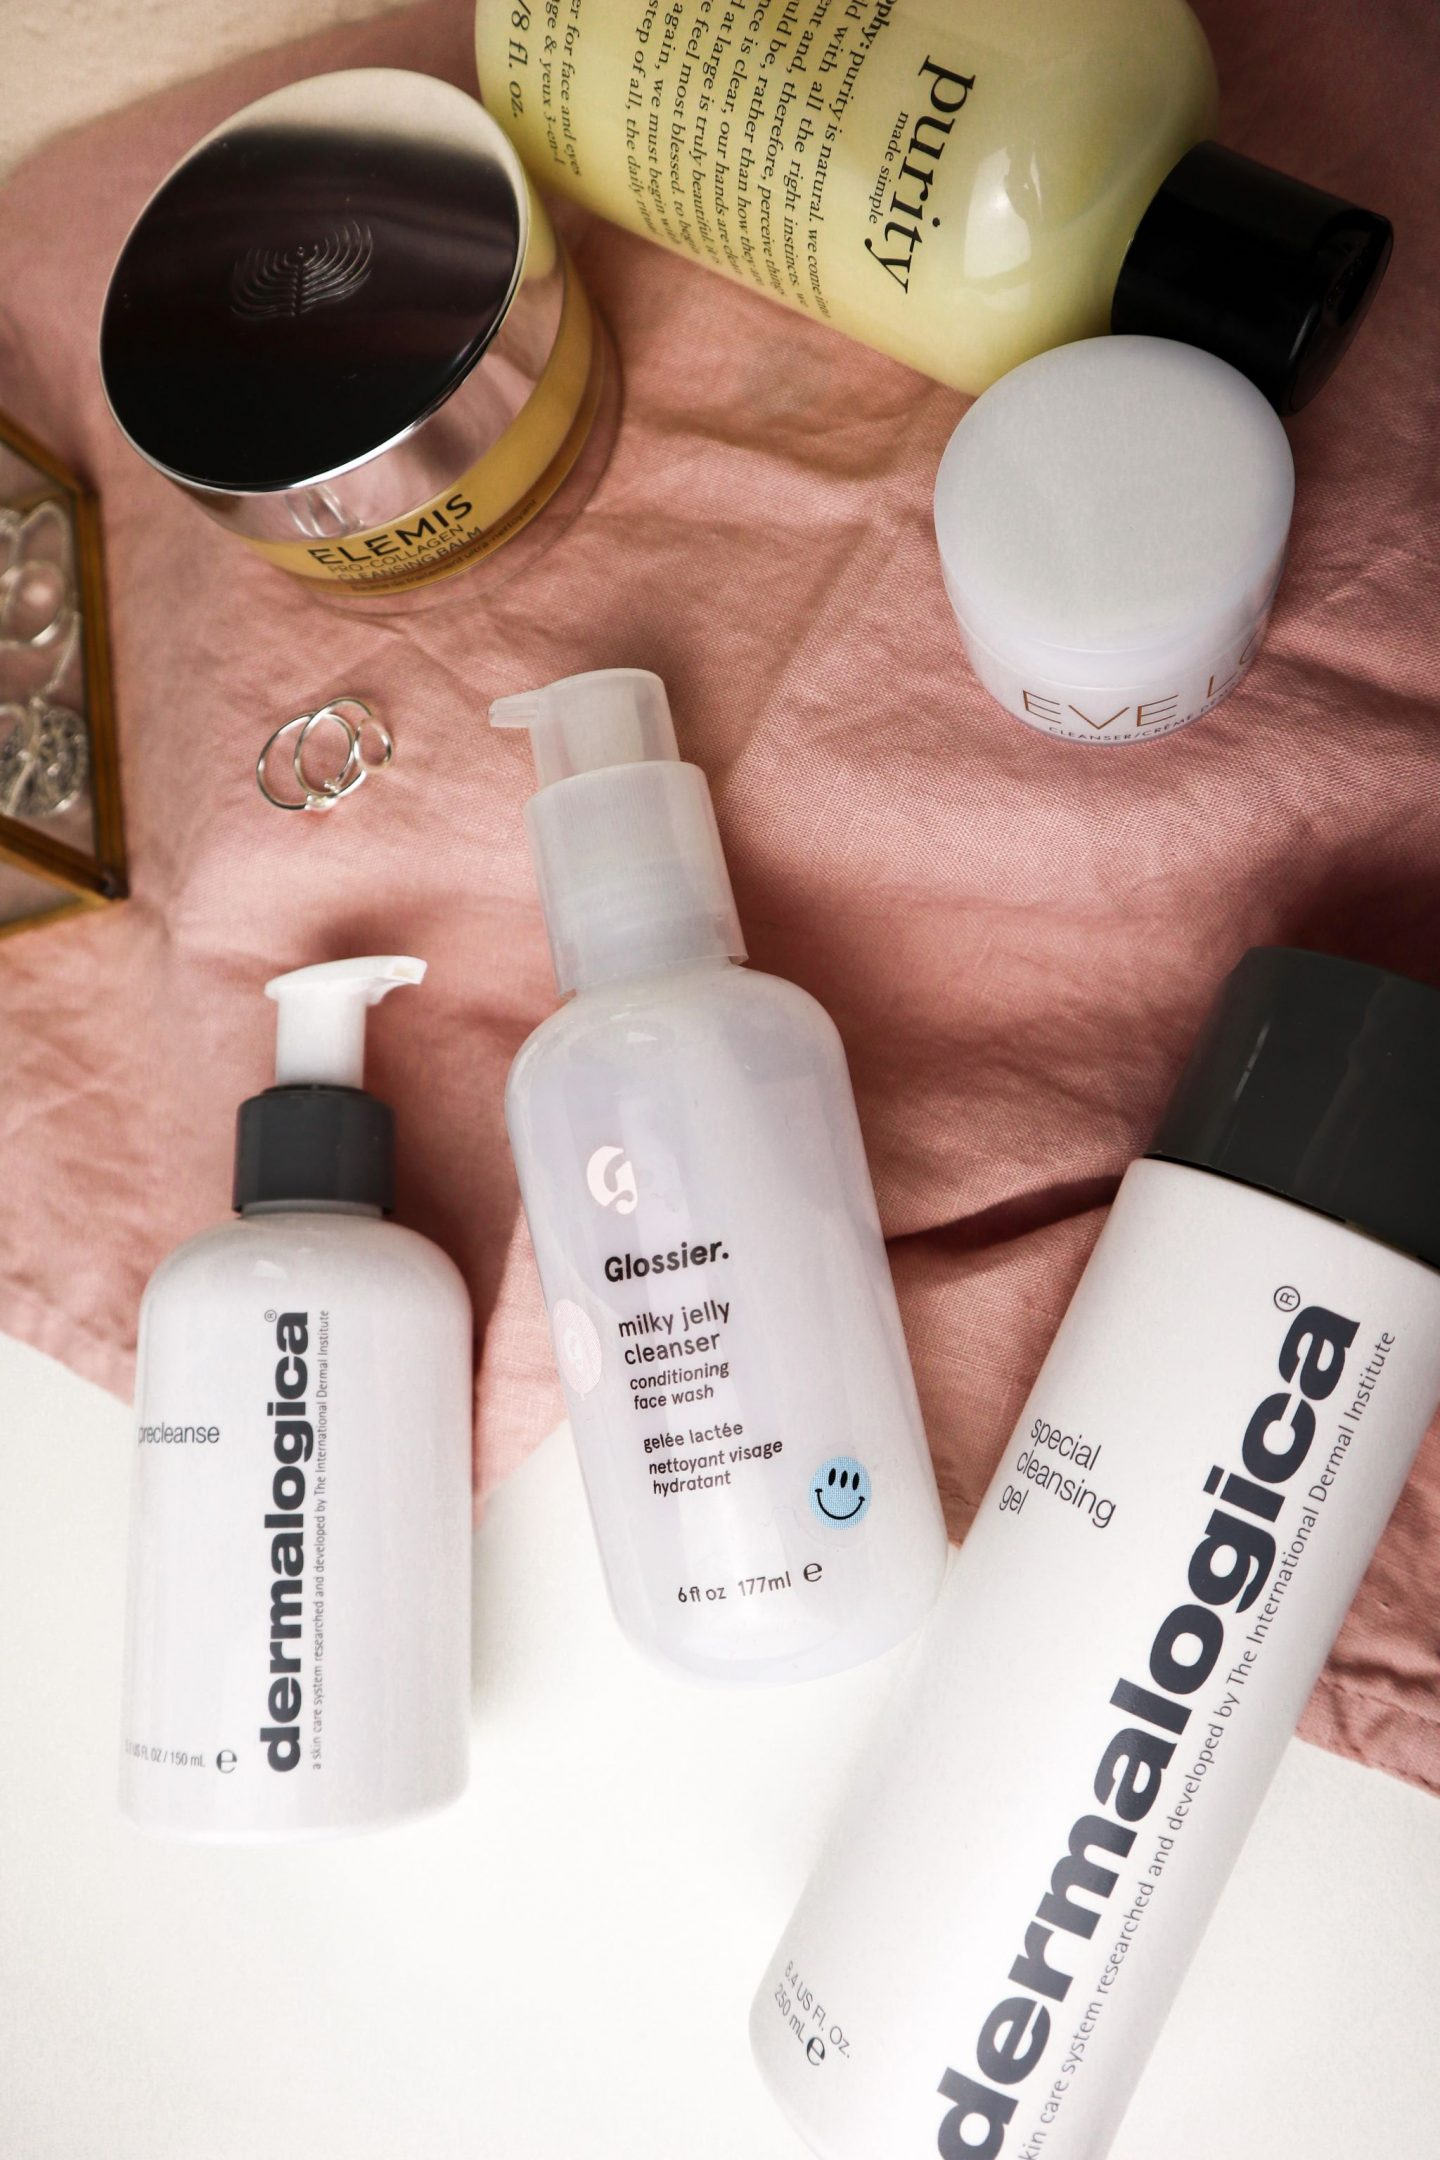 Why you need to double cleanse - dermalogica, glossier and elemis products